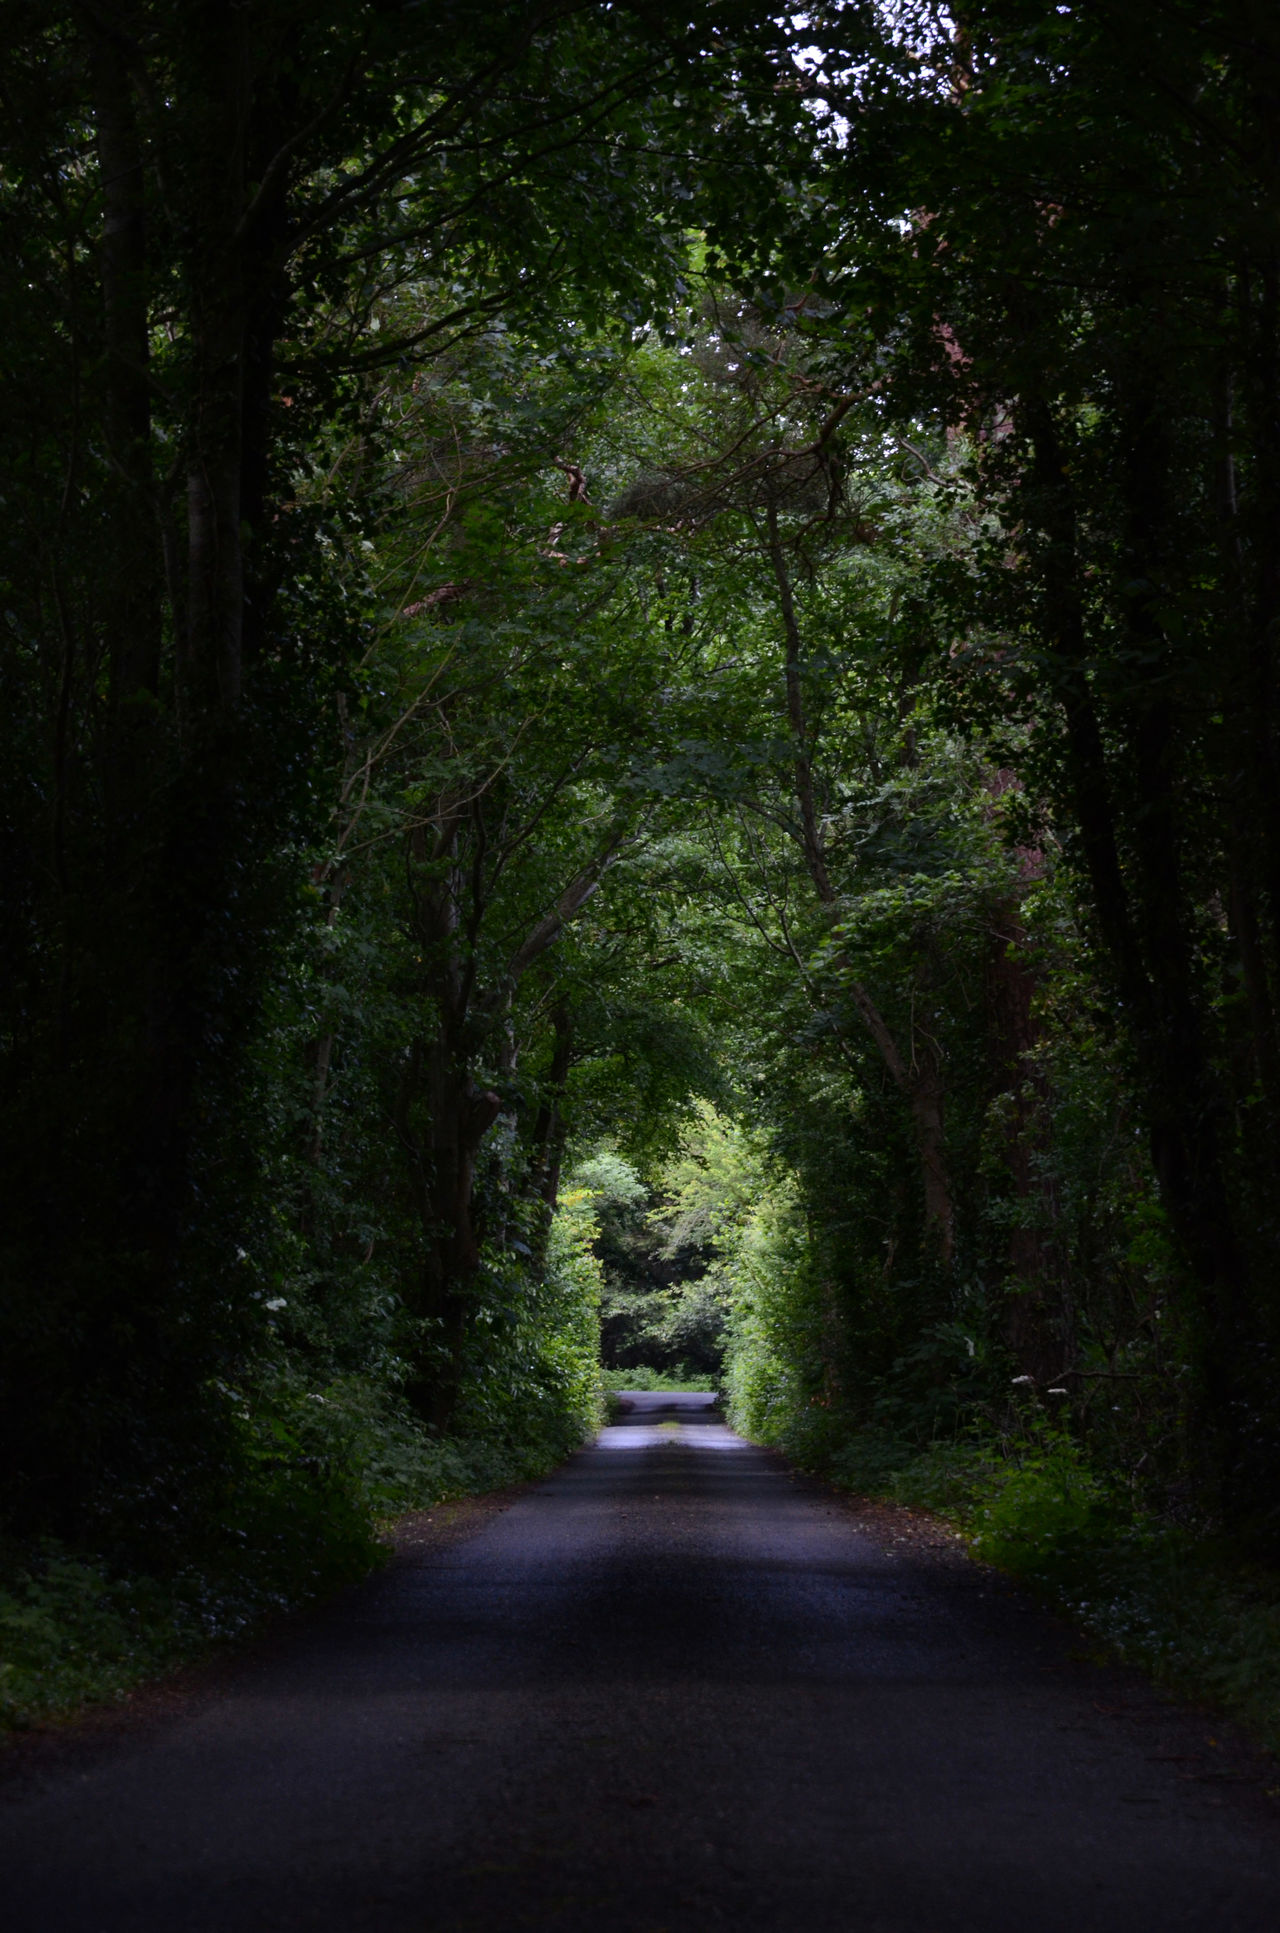 Dark Forest Outdoors Road The Way Forward Tree Tunnel